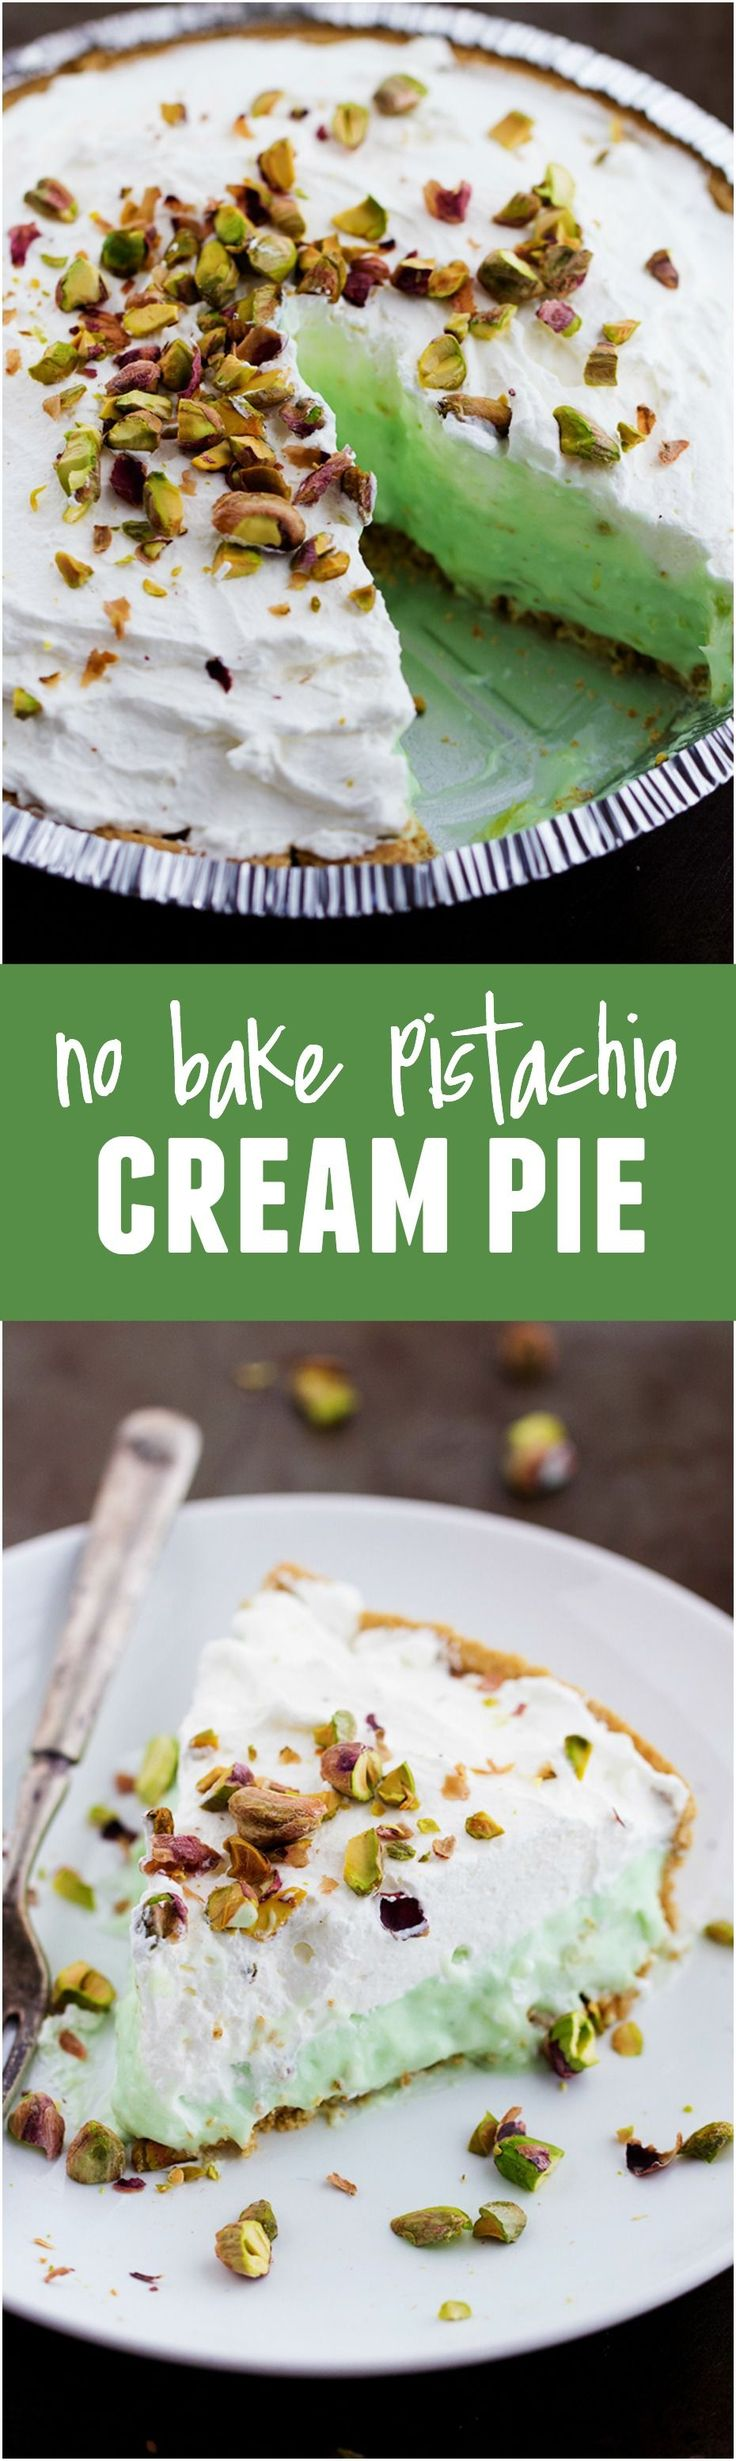 This Pistachio Cream Pie is No Bake and so easy to make! It is AMAZING!!!